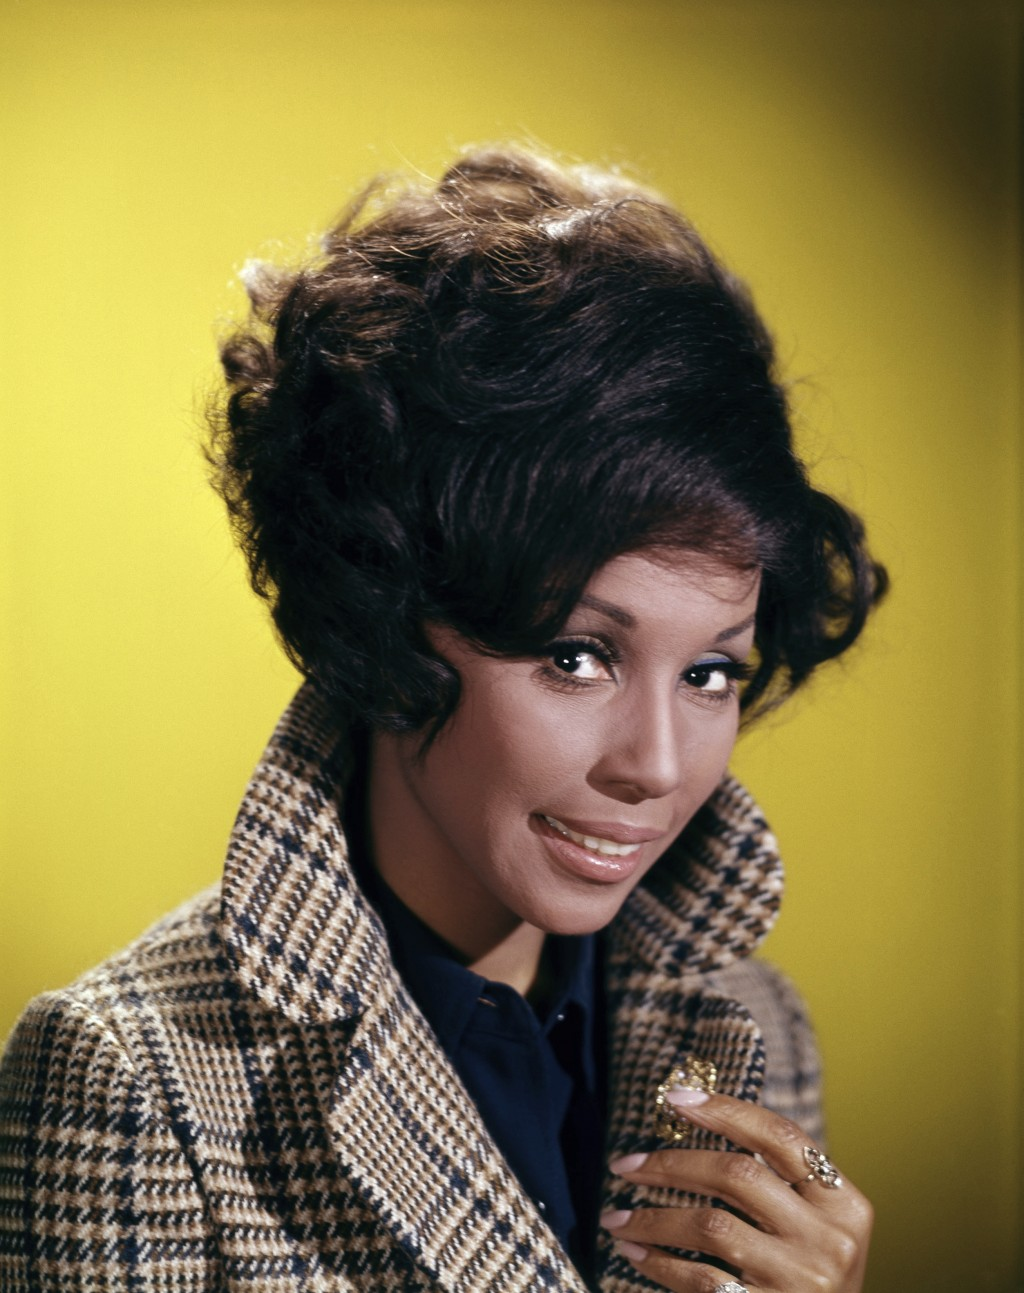 FILE - This 1972 file image shows singer and actress Diahann Carroll. Carroll passed away Friday, Oct. 4, 2019  at her home in Los Angeles after a lon...